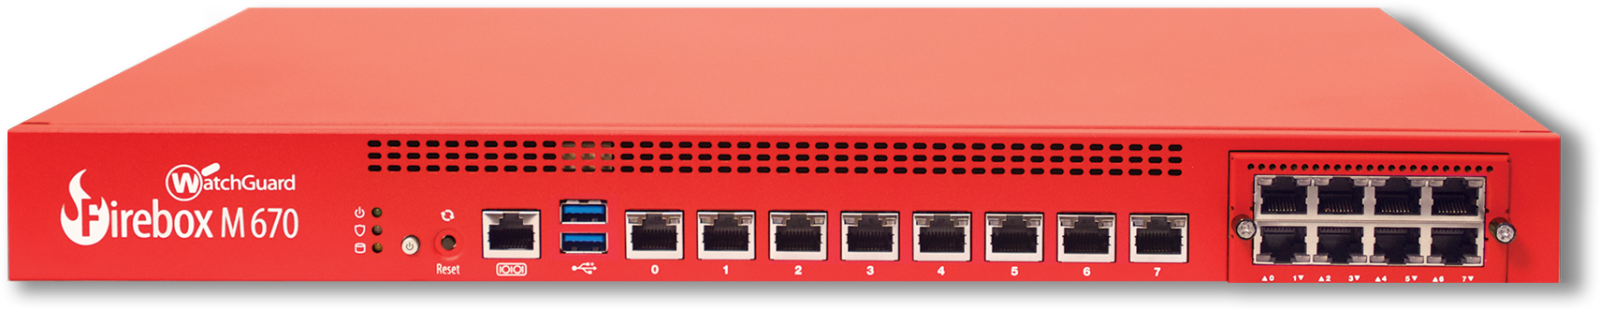 WatchGuard Firebox M470 Firewall